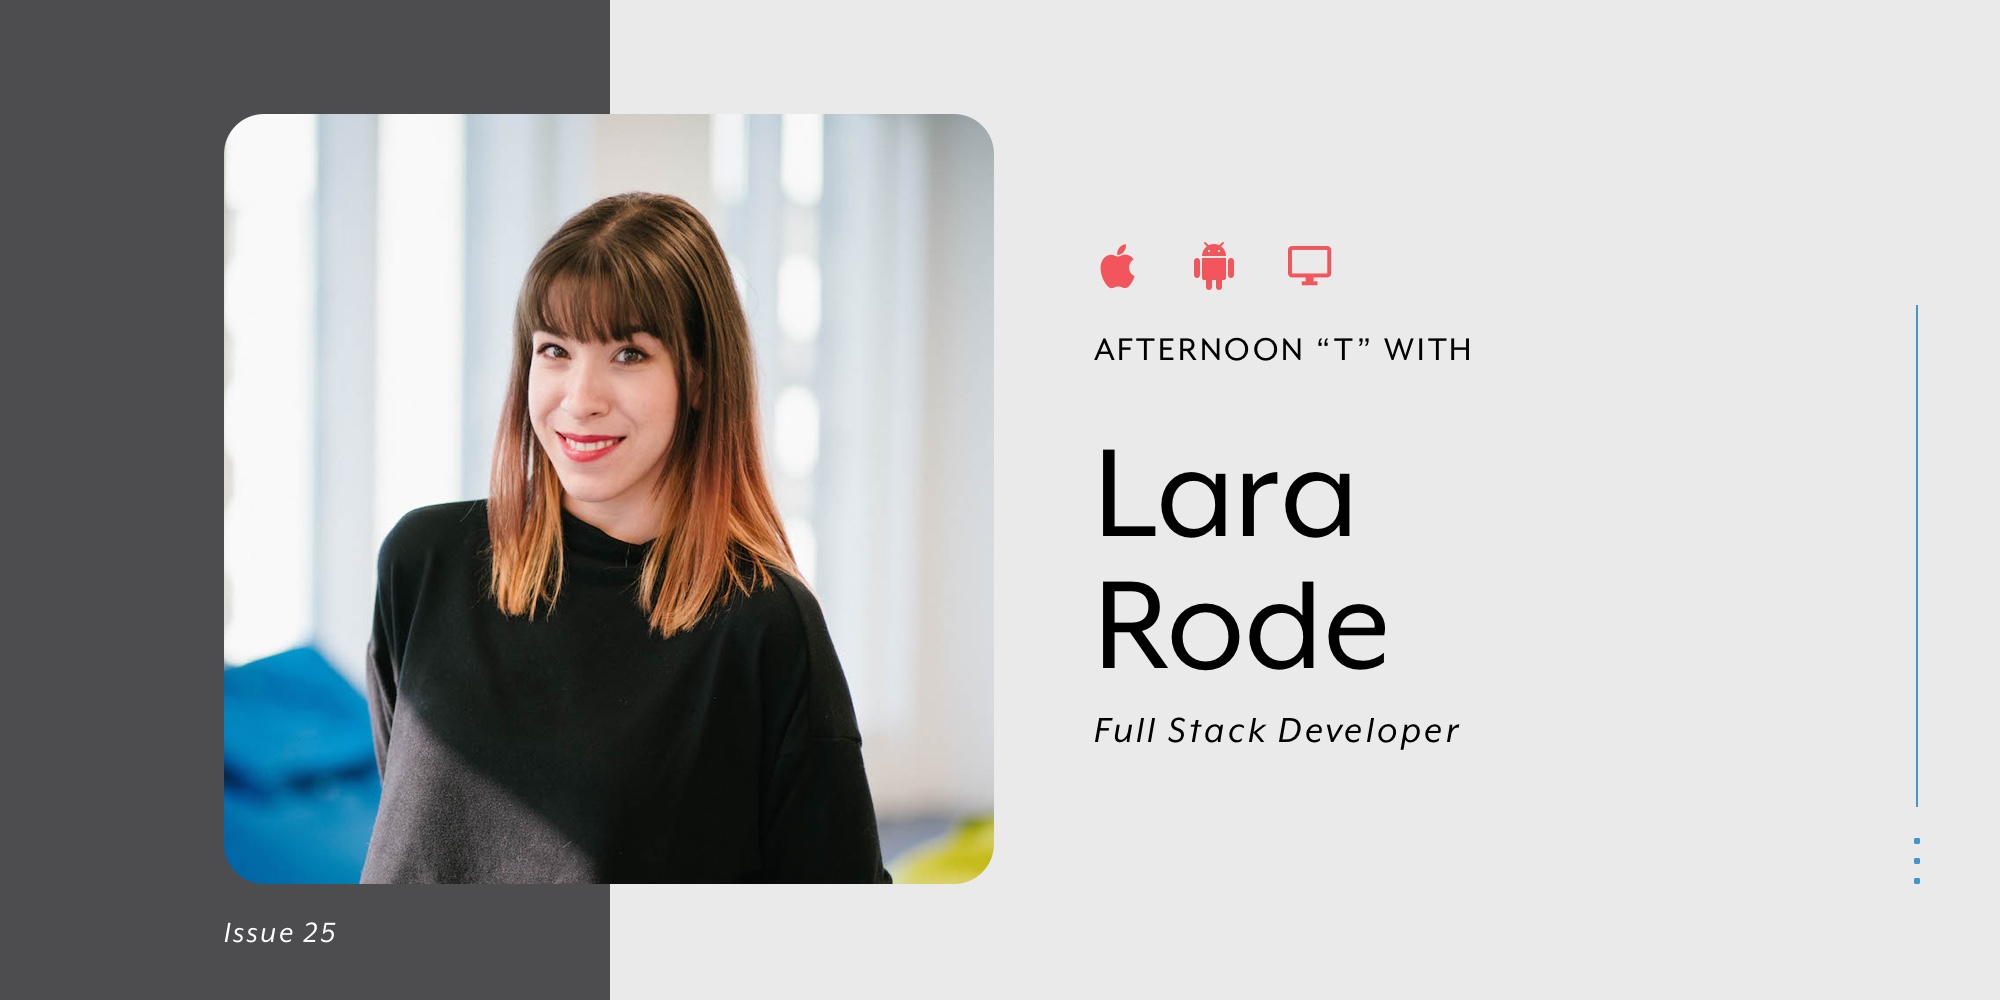 Picture of full stack developer Lara Rode for blog banner